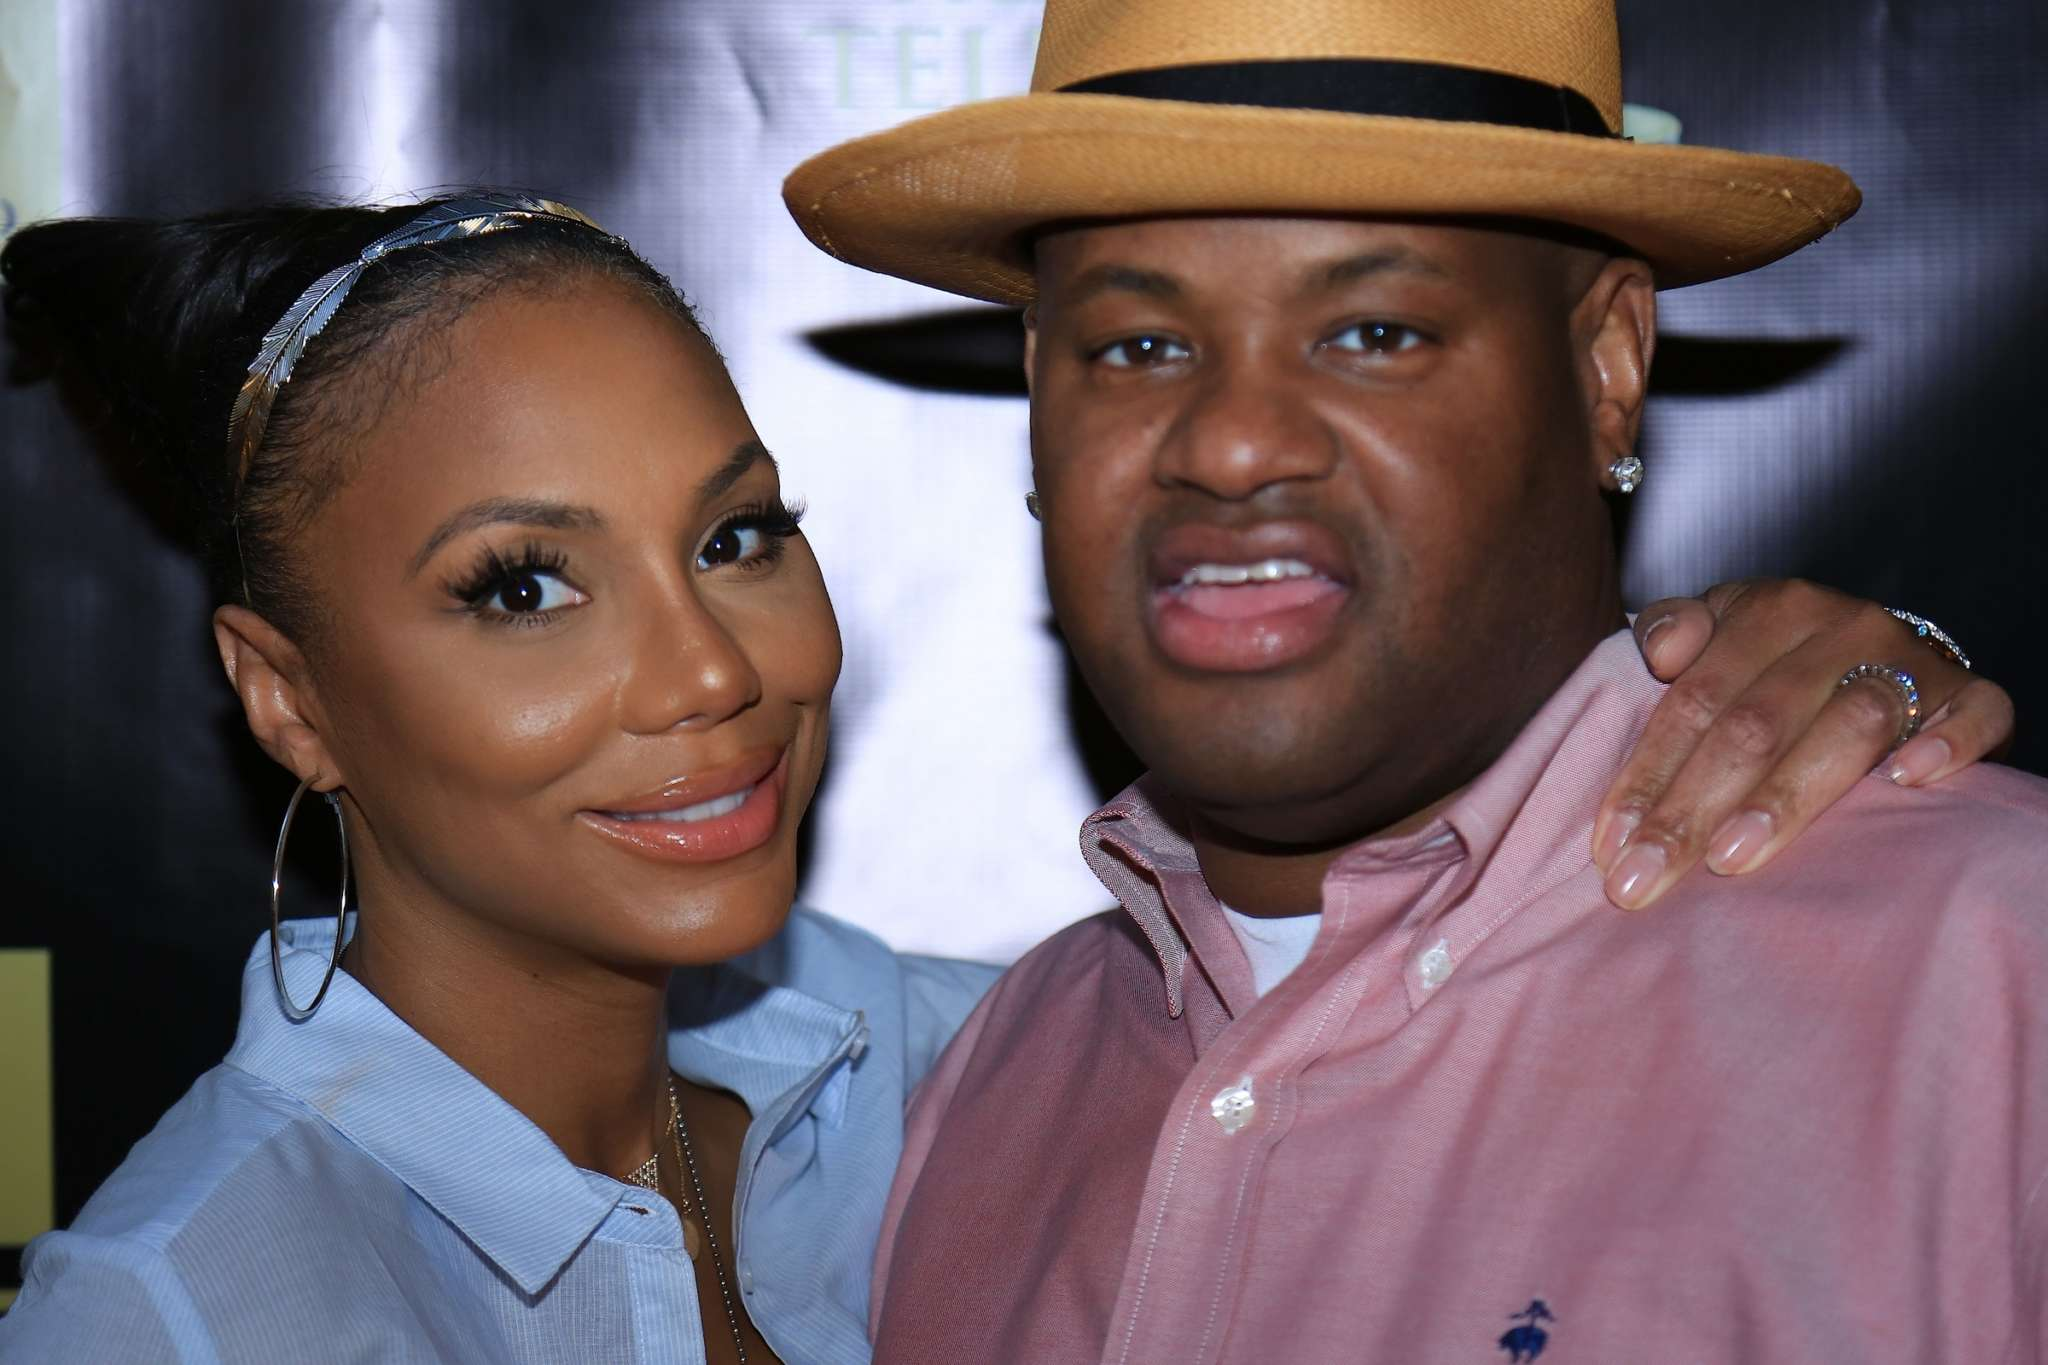 tamar-braxton-and-vince-herbert-in-a-really-good-place-again-a-year-after-divorce-is-finalized-details